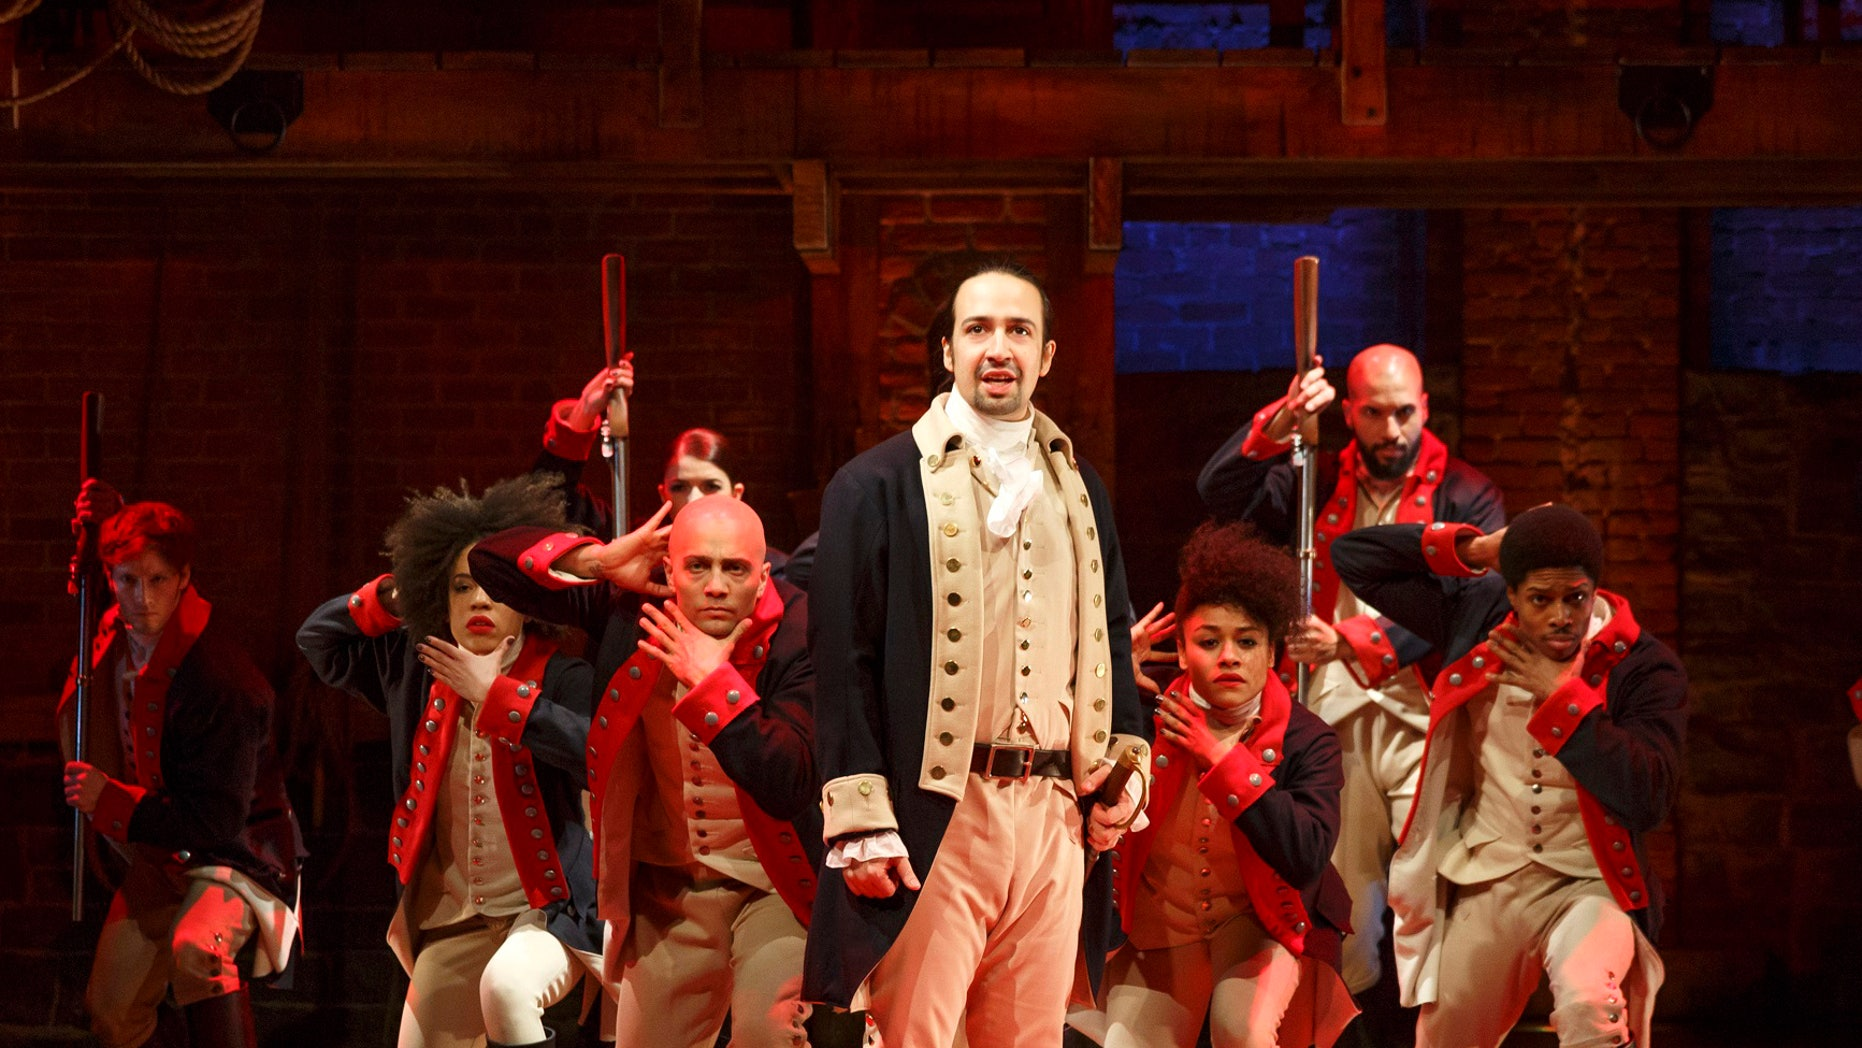 """This image released by The Public Theater shows Lin-Manuel Miranda, foreground, with the cast during a performance of """"Hamilton,"""" in New York. """"Hamilton,"""" the hip-hop stage biography of Alexander Hamilton won the 2016 Pulitzer Prize for drama on Monday, April 18, 2016. (Joan Marcus/The Public Theater via AP)"""